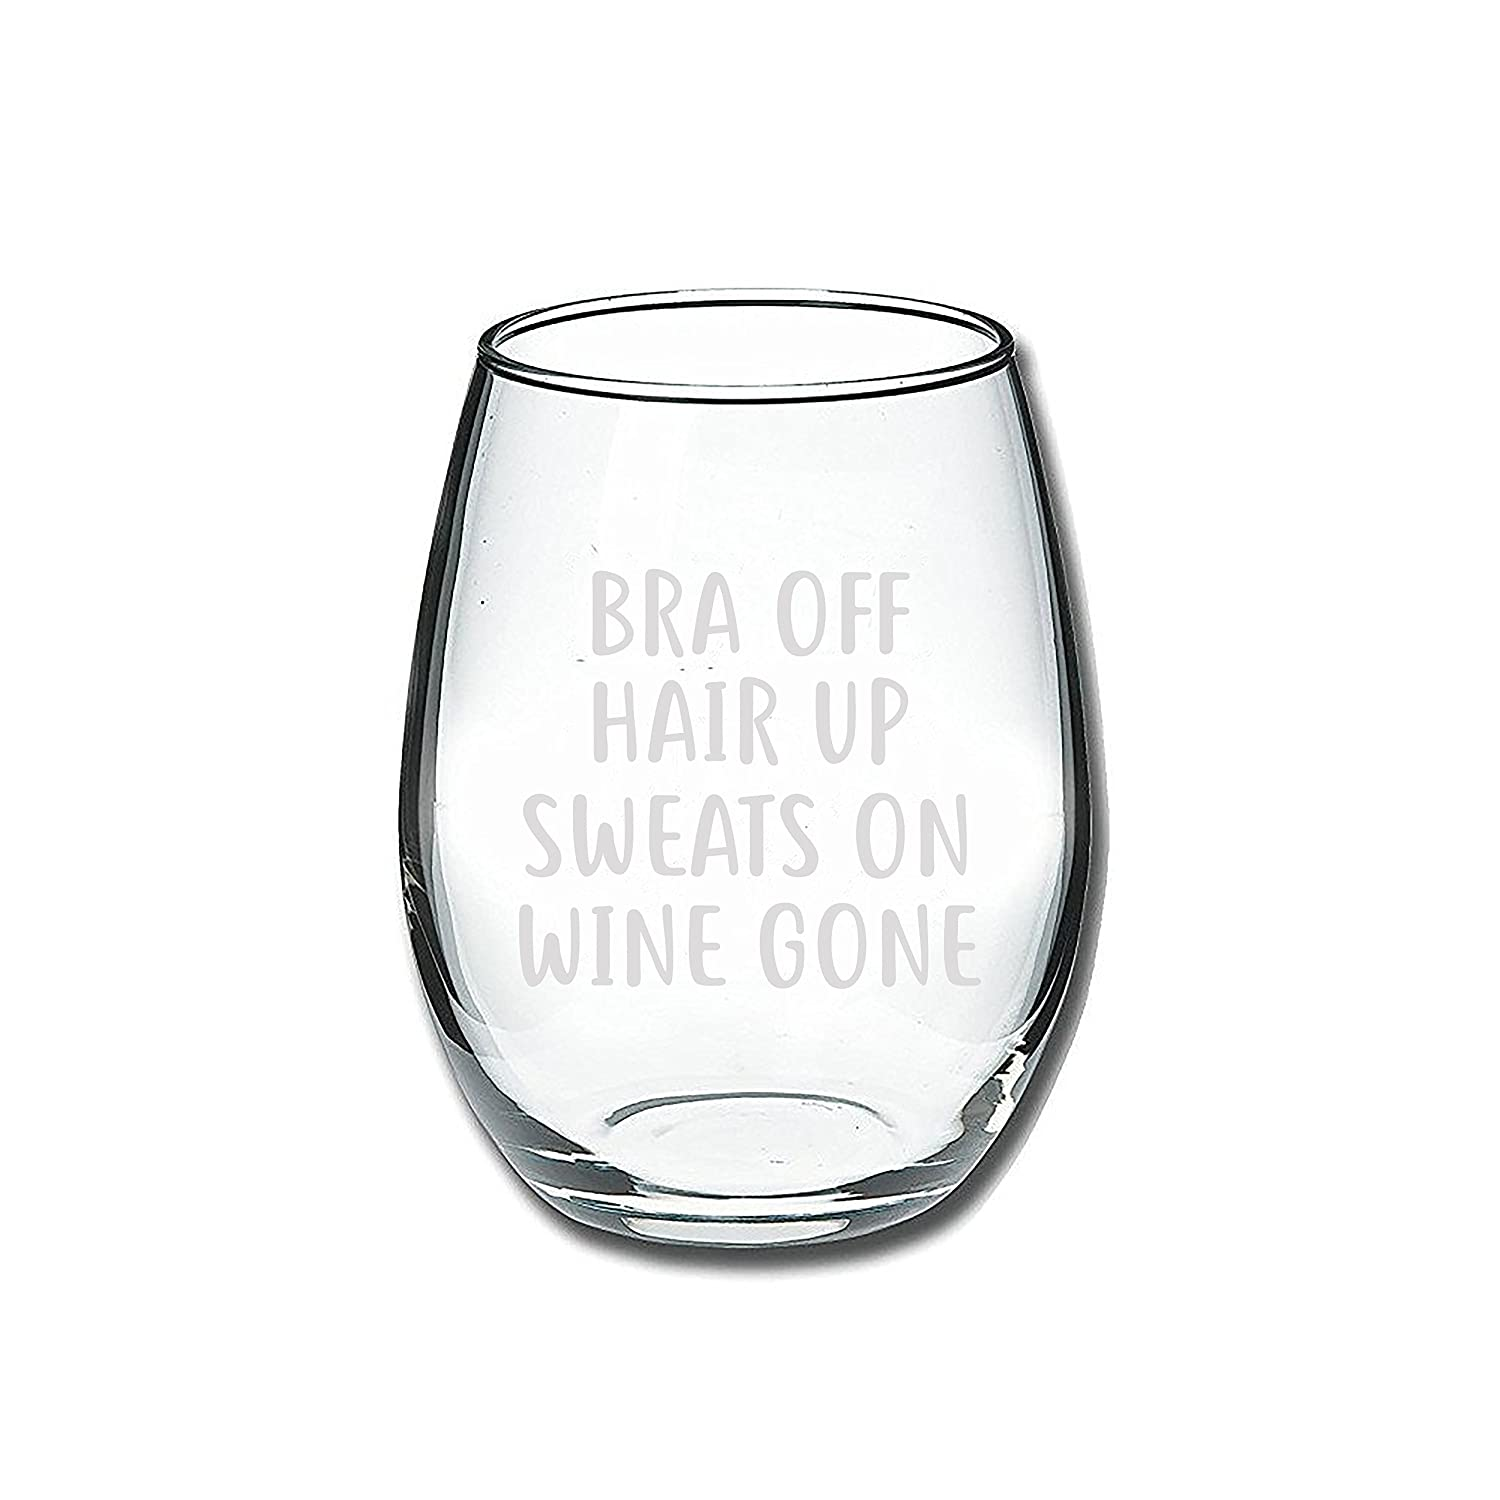 Best Friend Unique Christmas Gift Idea for Her Bra Off Hair Up Sweats On Wine Gone Funny 15oz Wine Glass Perfect Birthday Gifts for Women Sister BFF Mom Wife Girlfriend